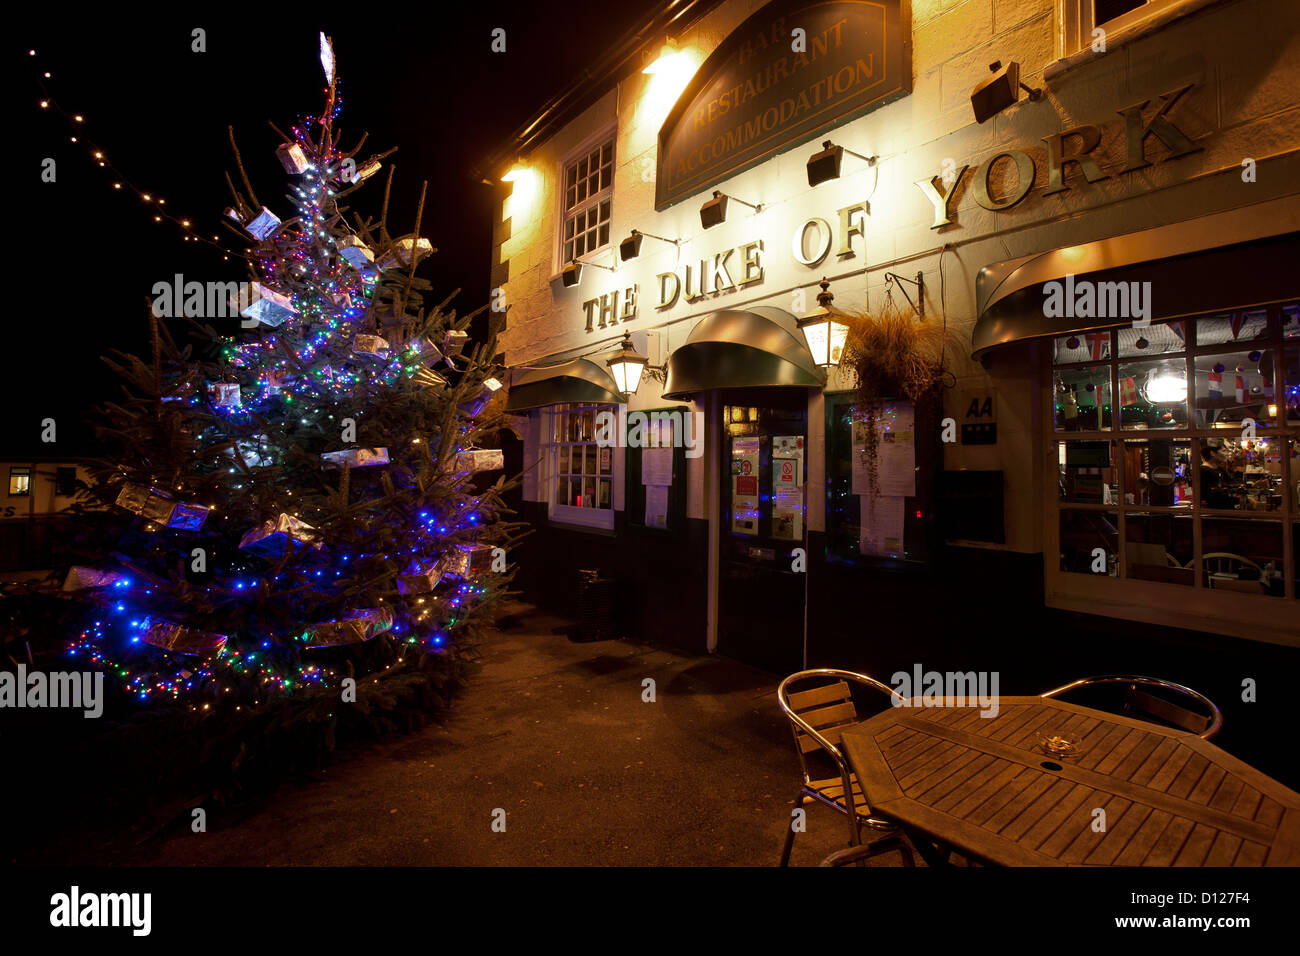 Christmas tree outside pub duke of york cowes isle of wight christmas tree outside pub duke of york cowes isle of wight england uk presents lights xmas garden patio yard deck tables heater mozeypictures Gallery